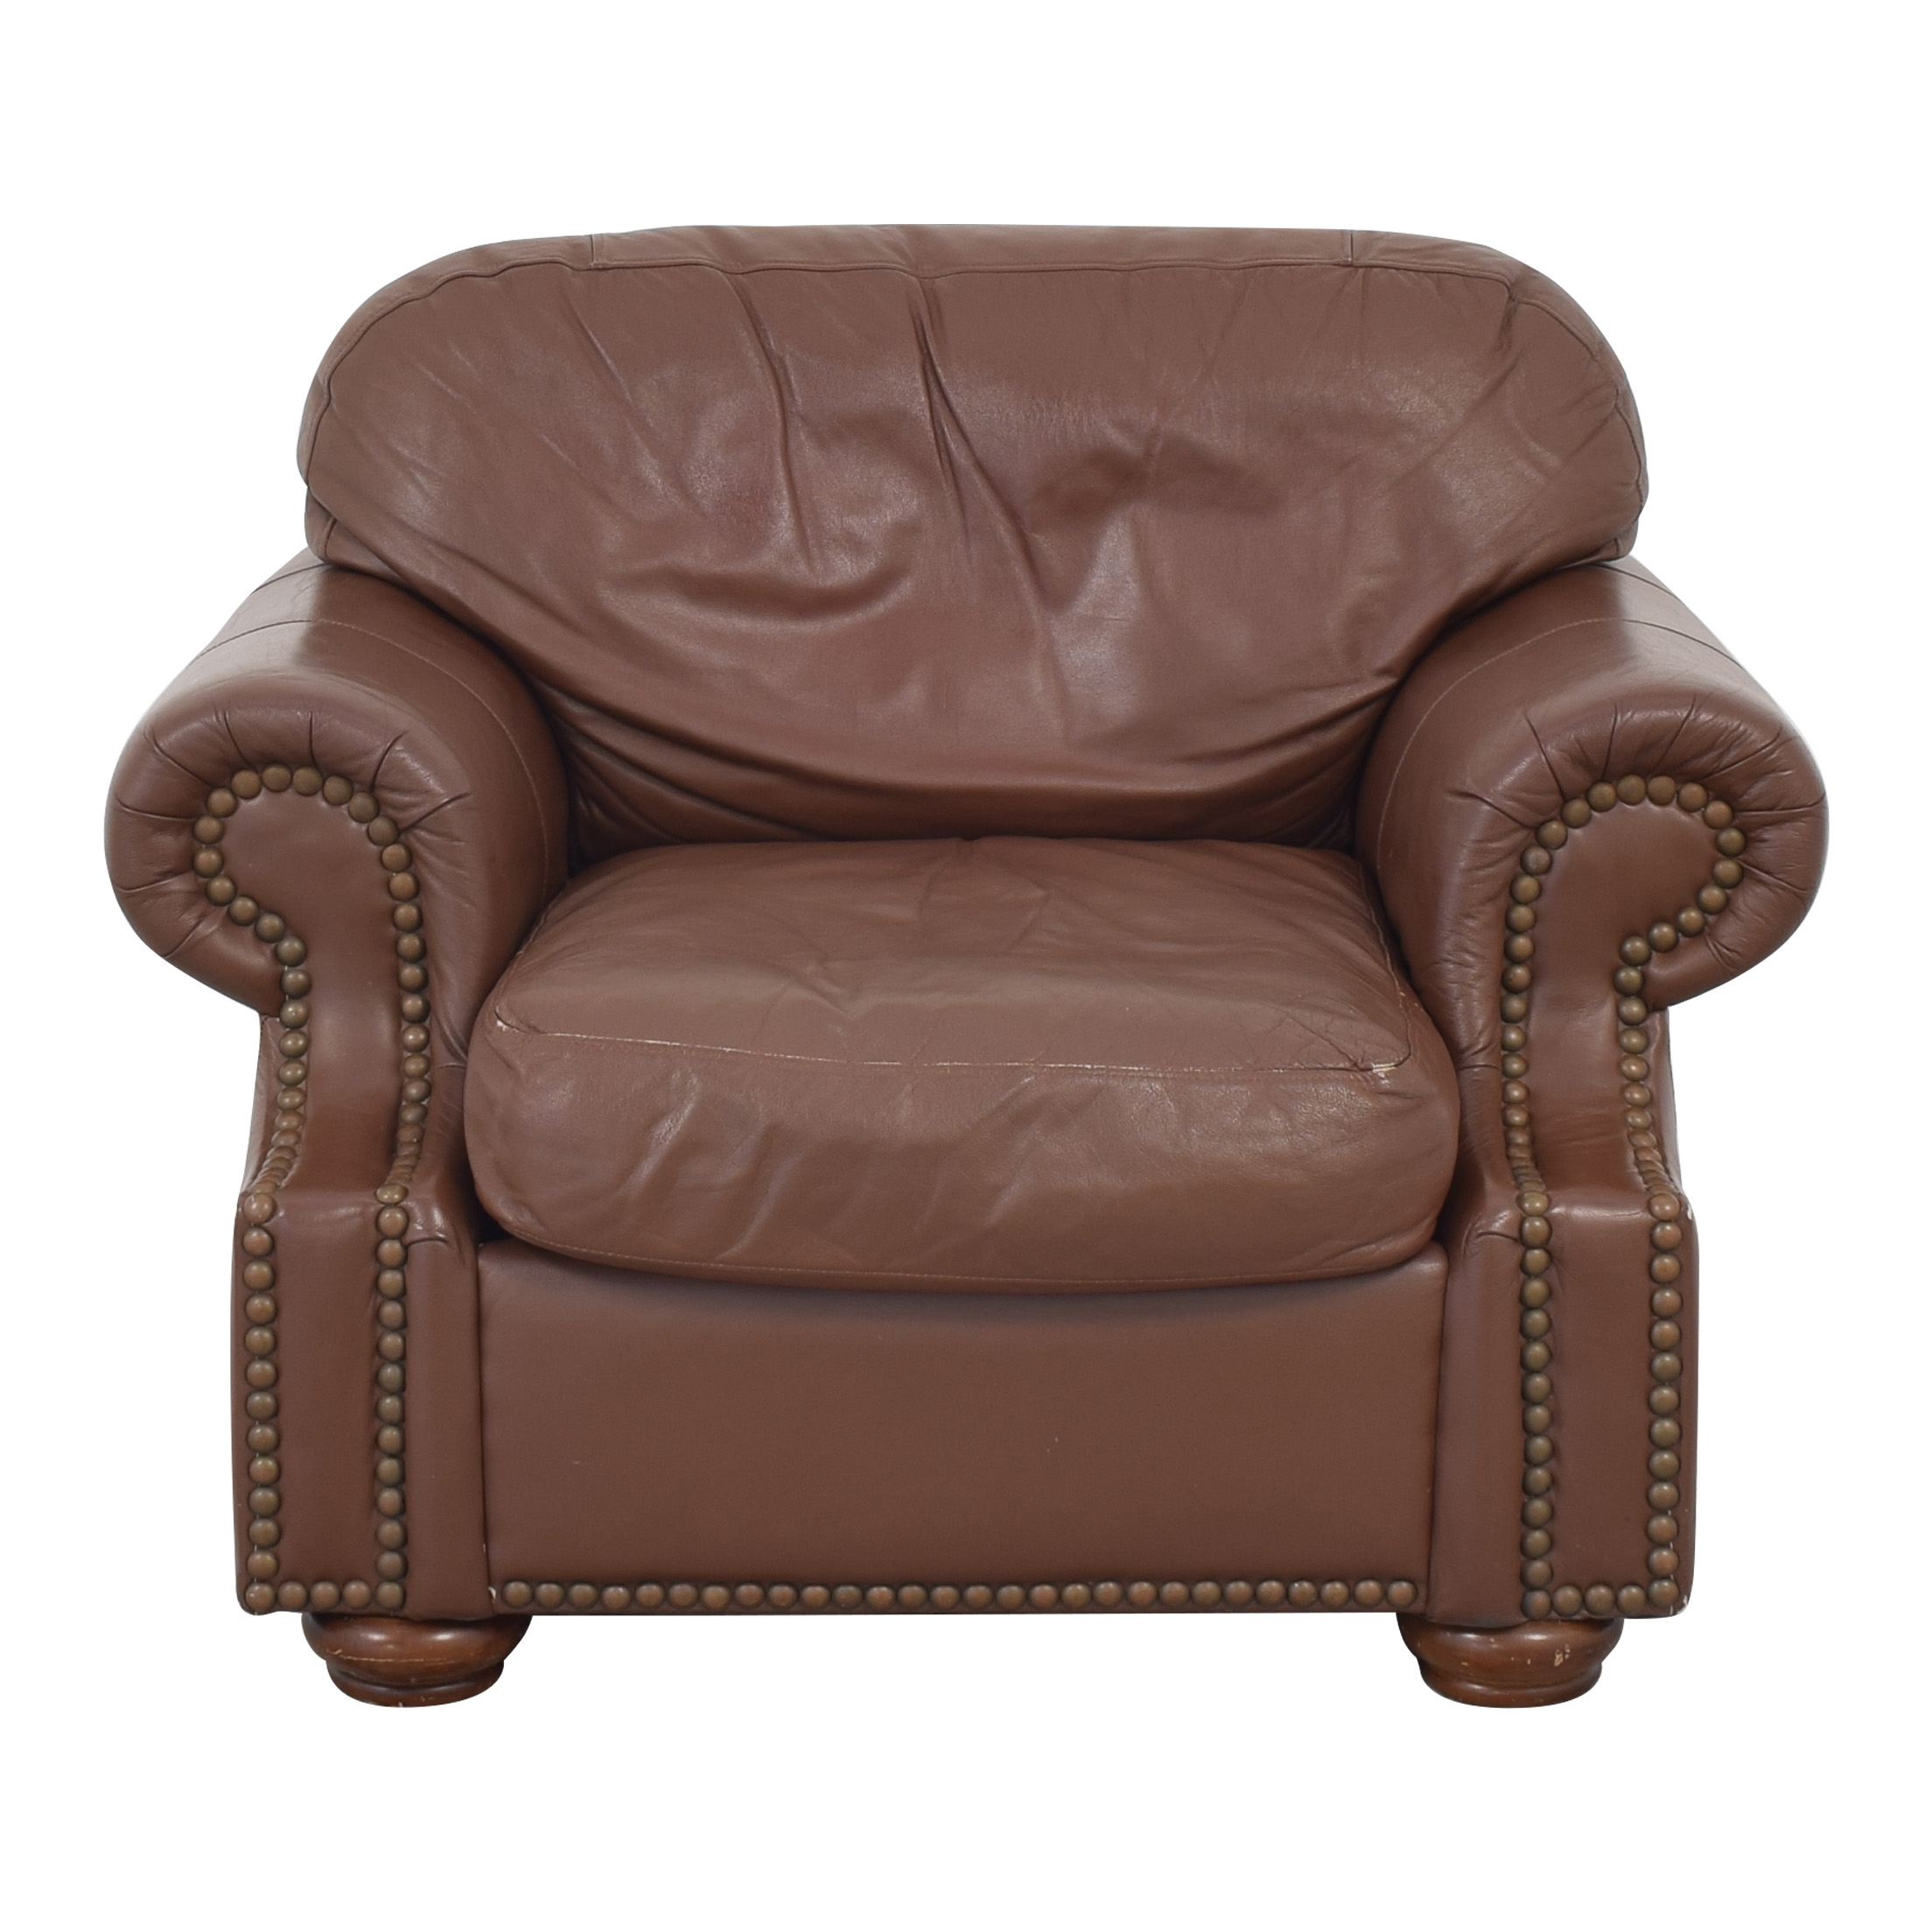 buy Arhaus Nailhead Trim Club Chair Arhaus Chairs